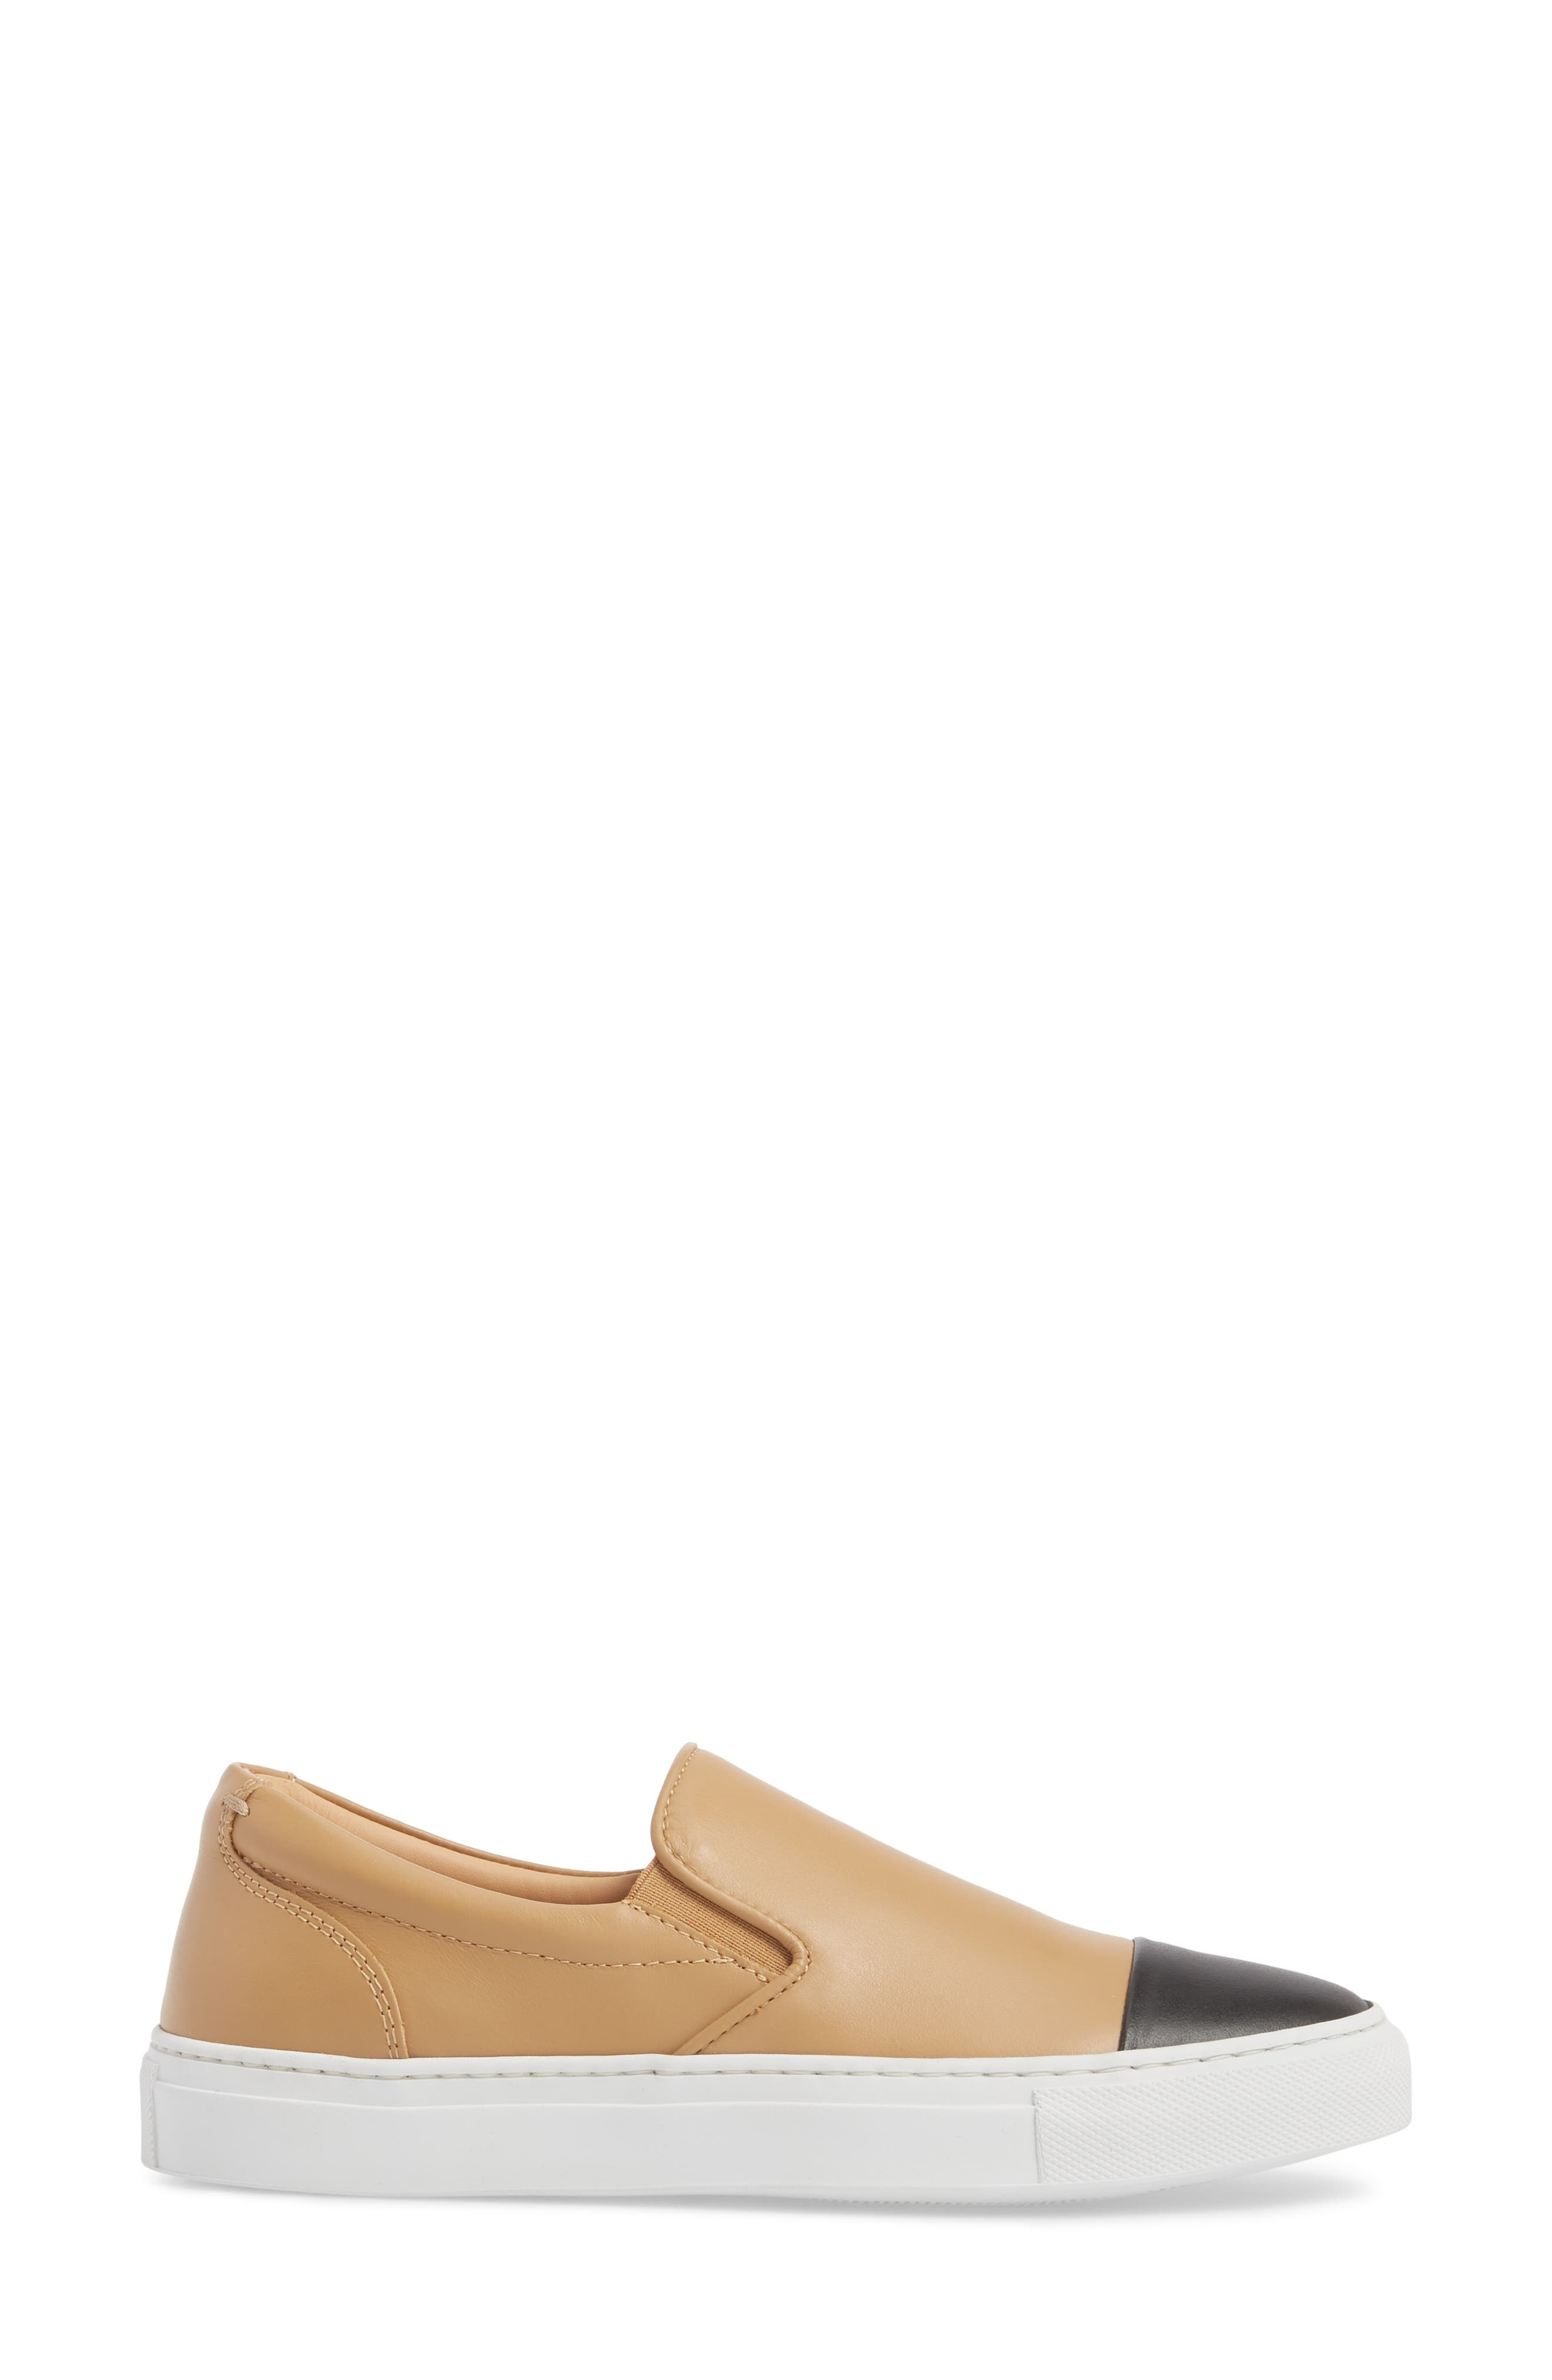 Wooster Cap Toe Slip-On Sneaker,                             Alternate thumbnail 3, color,                             Almond